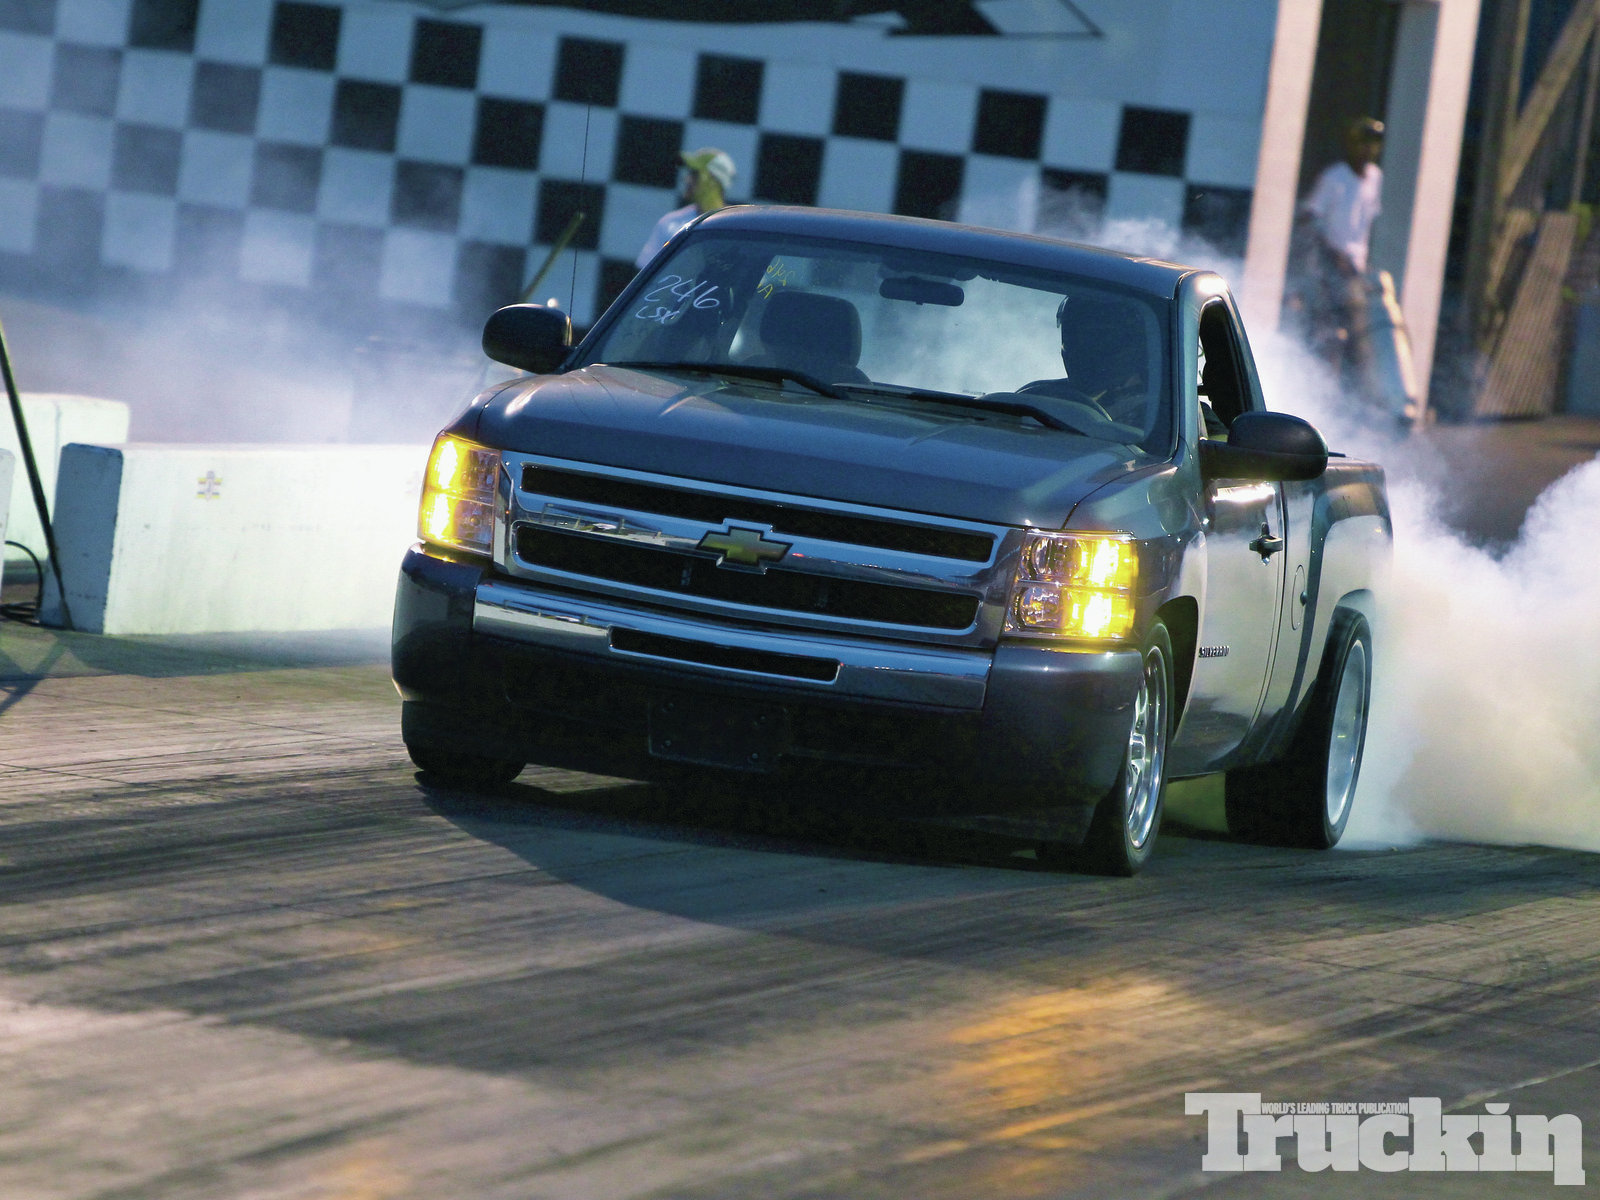 throwdown Holley Ls Fest 2012 Results 2011 Chevrolet Silverado Competeing